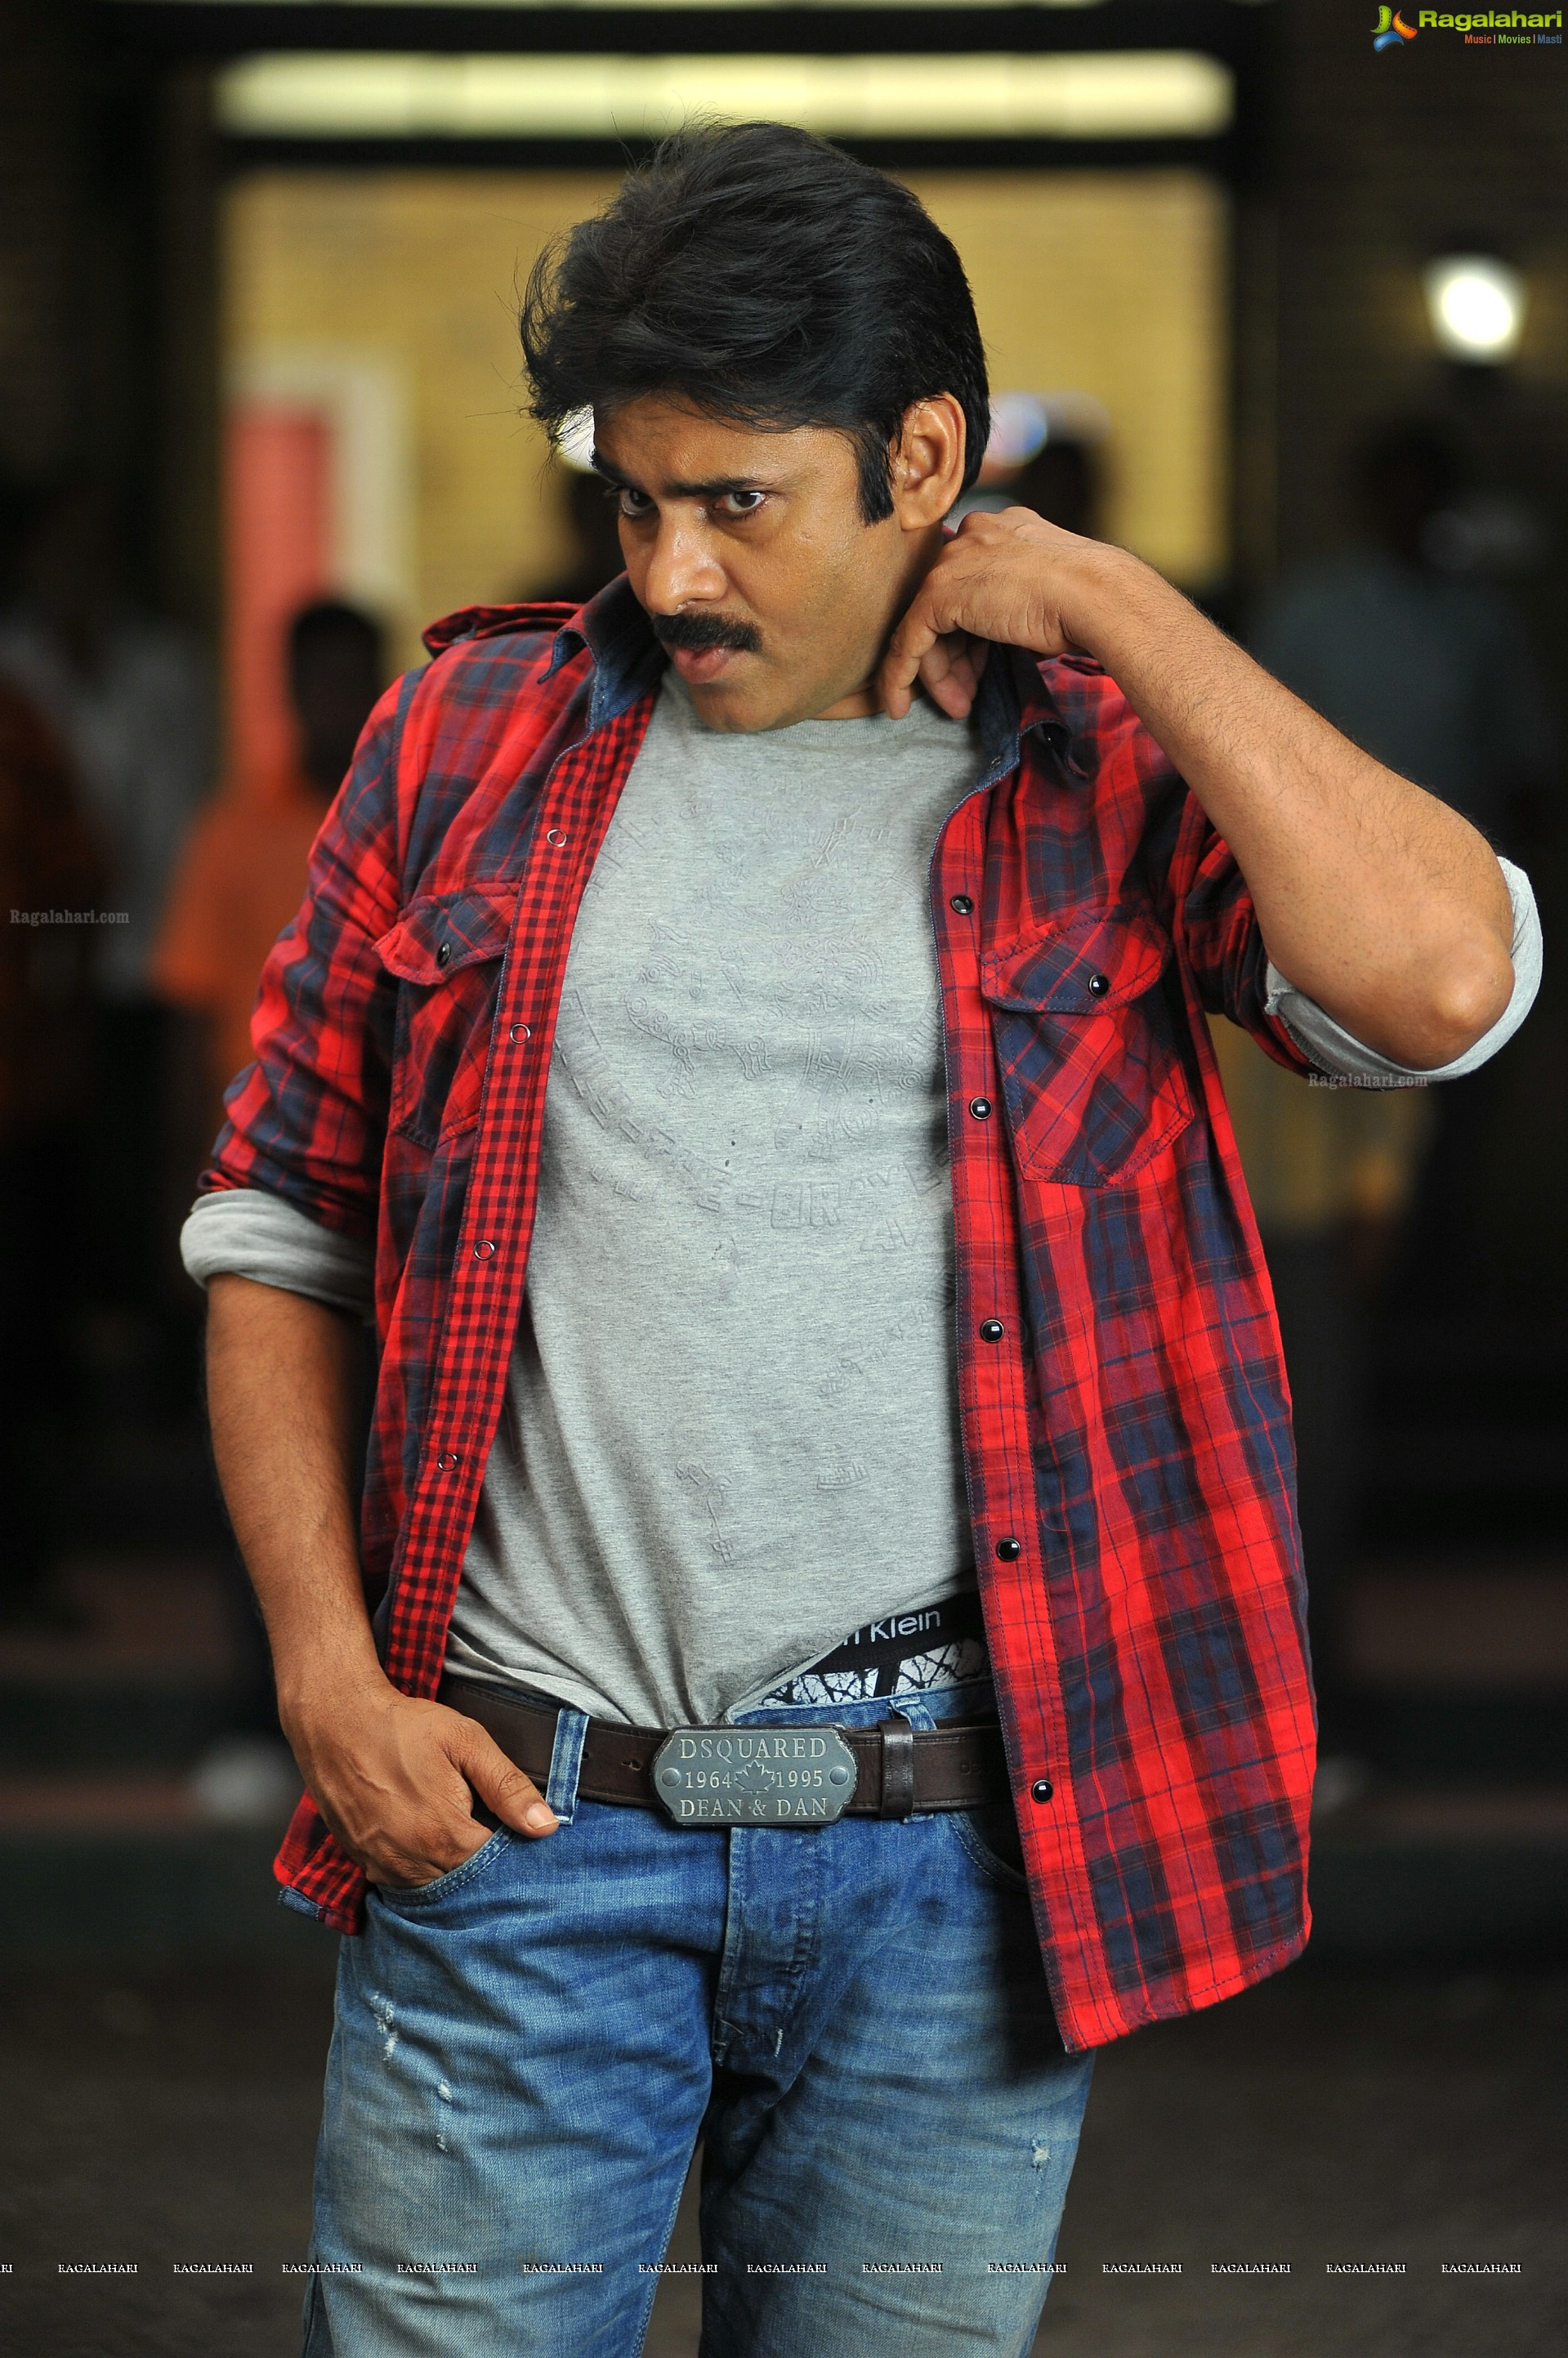 Pawan Kalyan Hd Image 159 Tollywoodes Wallpapers Images Pics Pictures P Oshoot Wallpapers